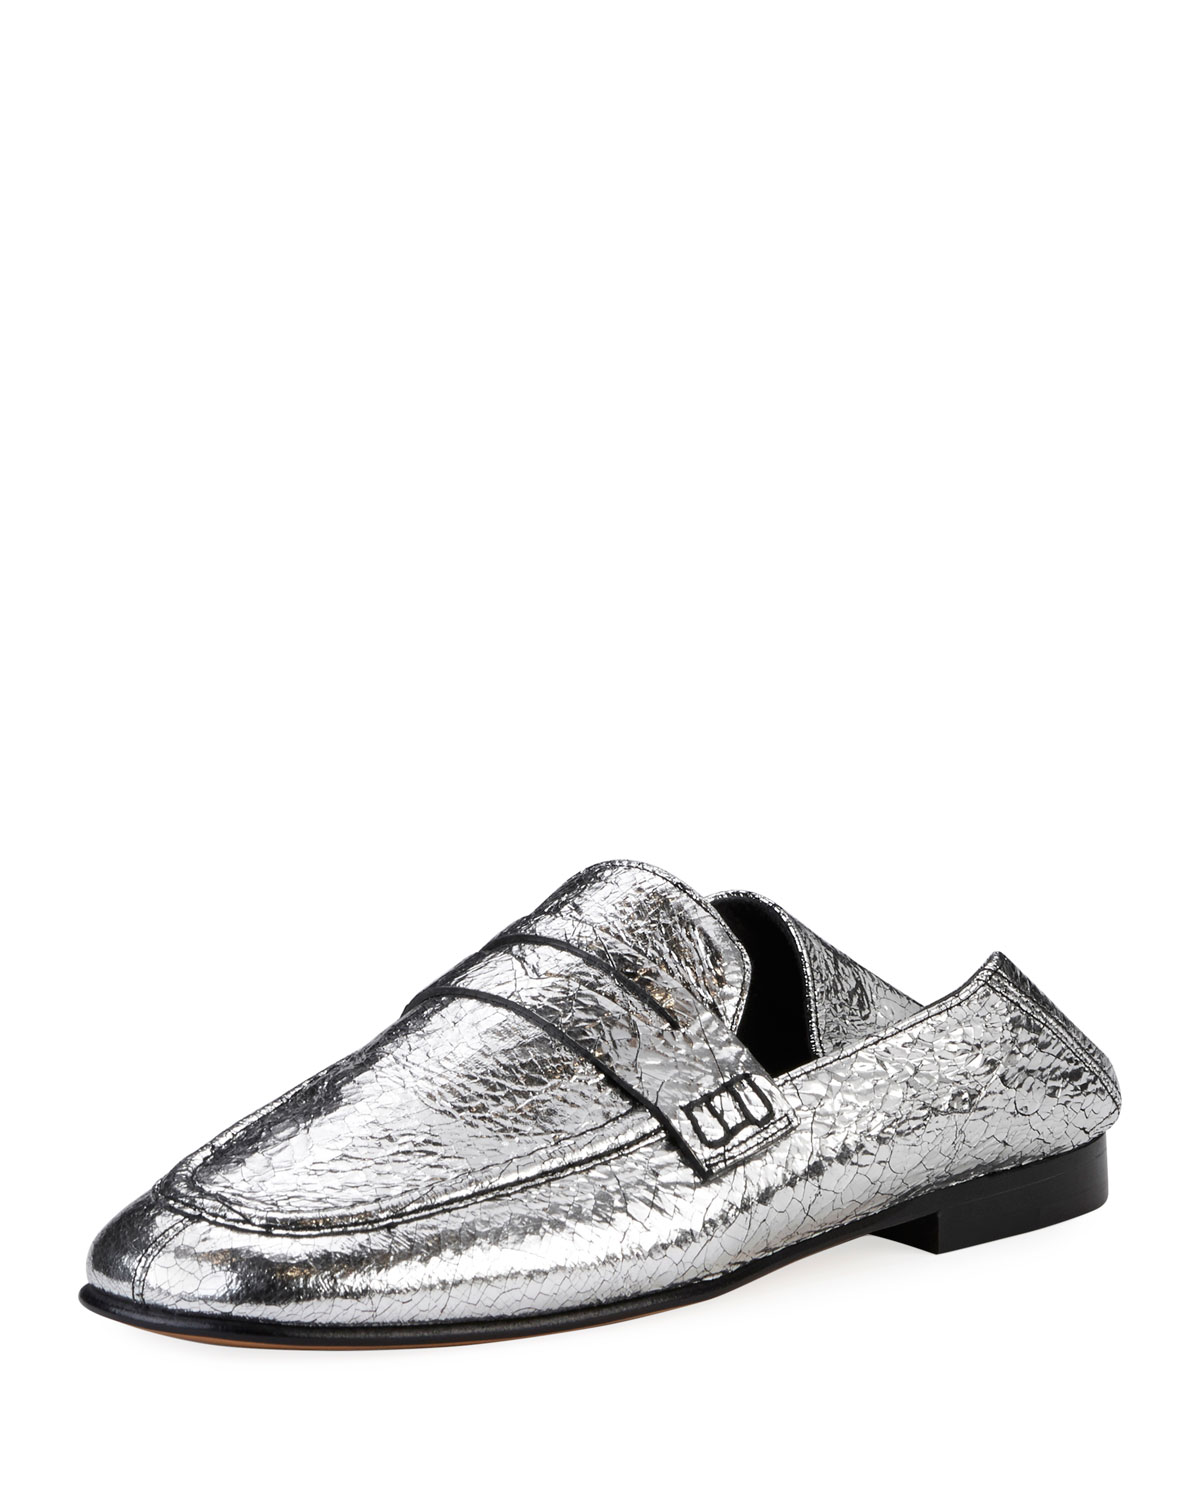 352a266065a Isabel Marant Fezzy Crackled Metallic Loafer Mule